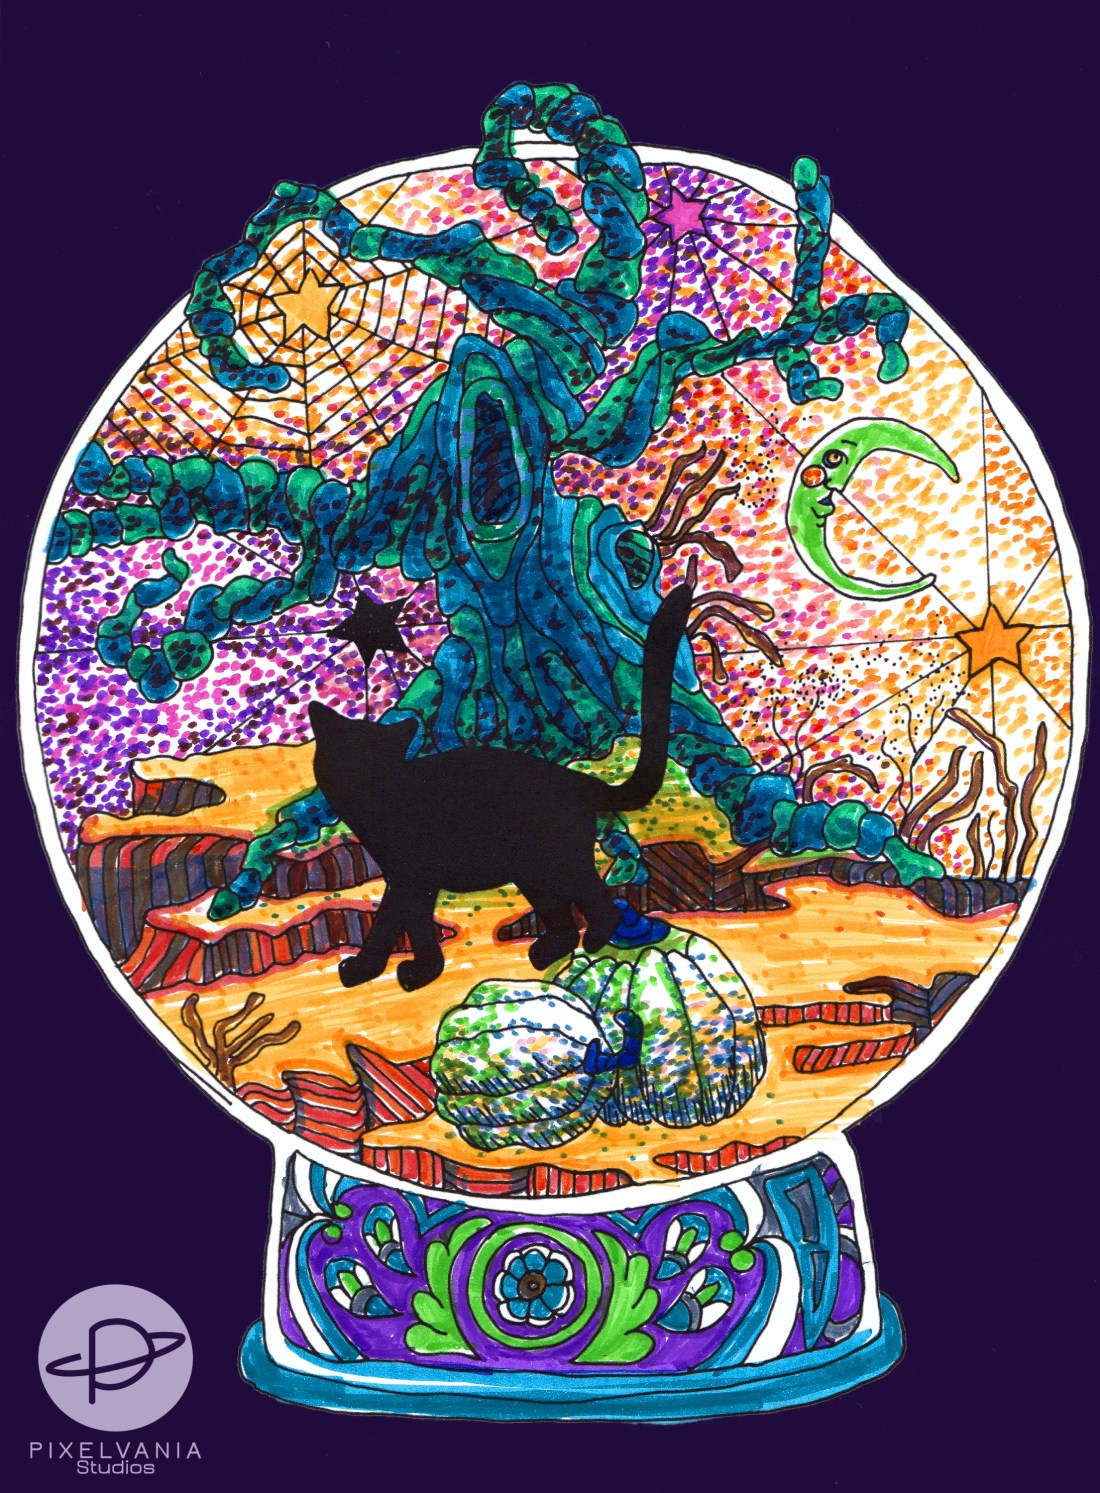 Coloring Book Page of a cat in front of a gnarled green tree and a colorful stippled sky.